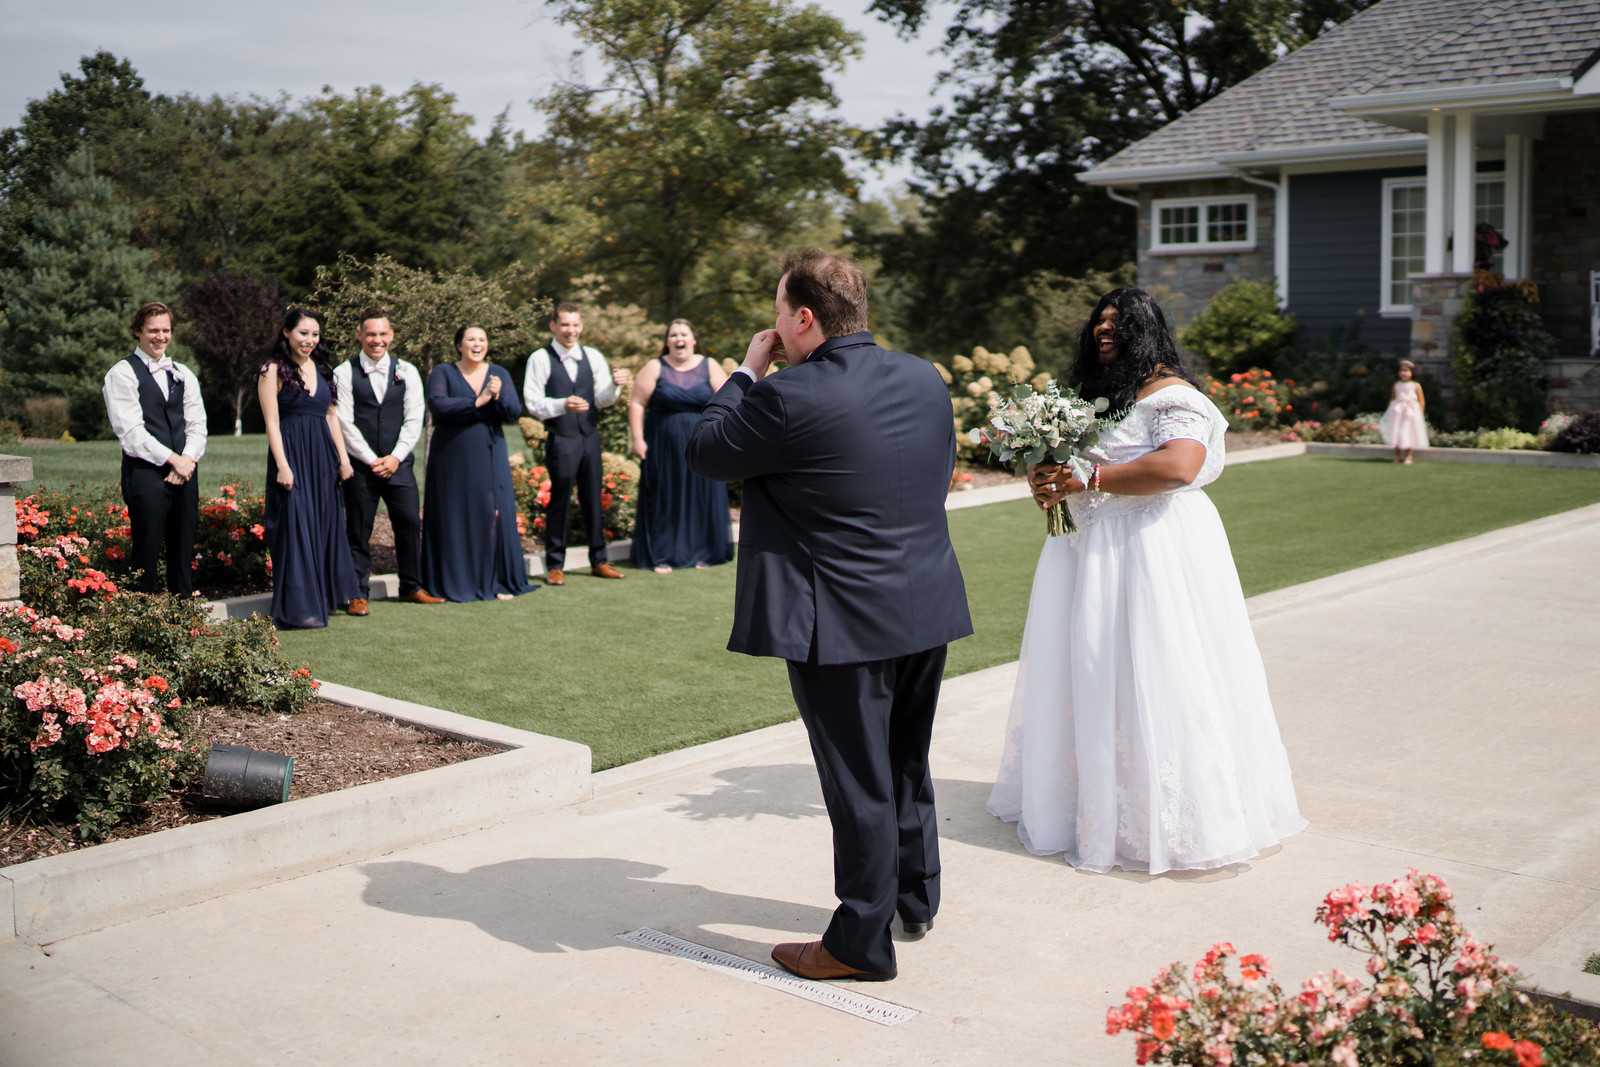 Groom turns round to see his friend dressed in a brides dress